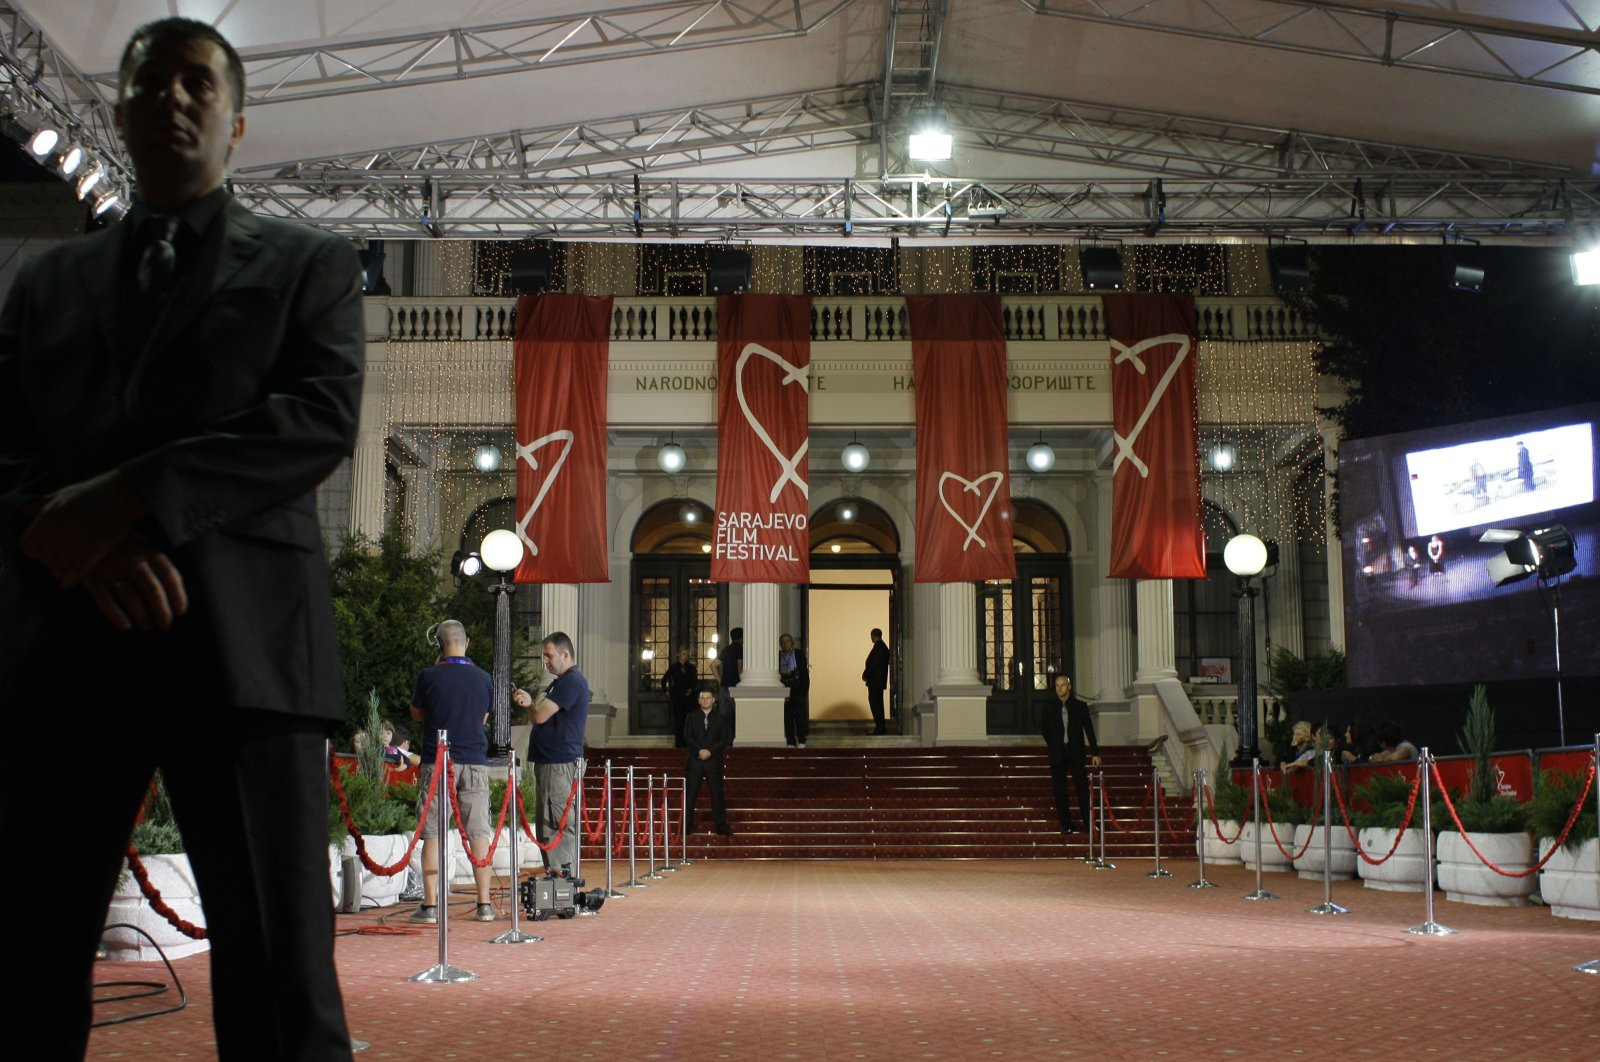 A security guard secures the entrance to the Bosnian National Theatre during the opening ceremony of the 17th Sarajevo Film Festval in Bosnian capital Sarajevo, July 22, 2011. (AP PHOTO)